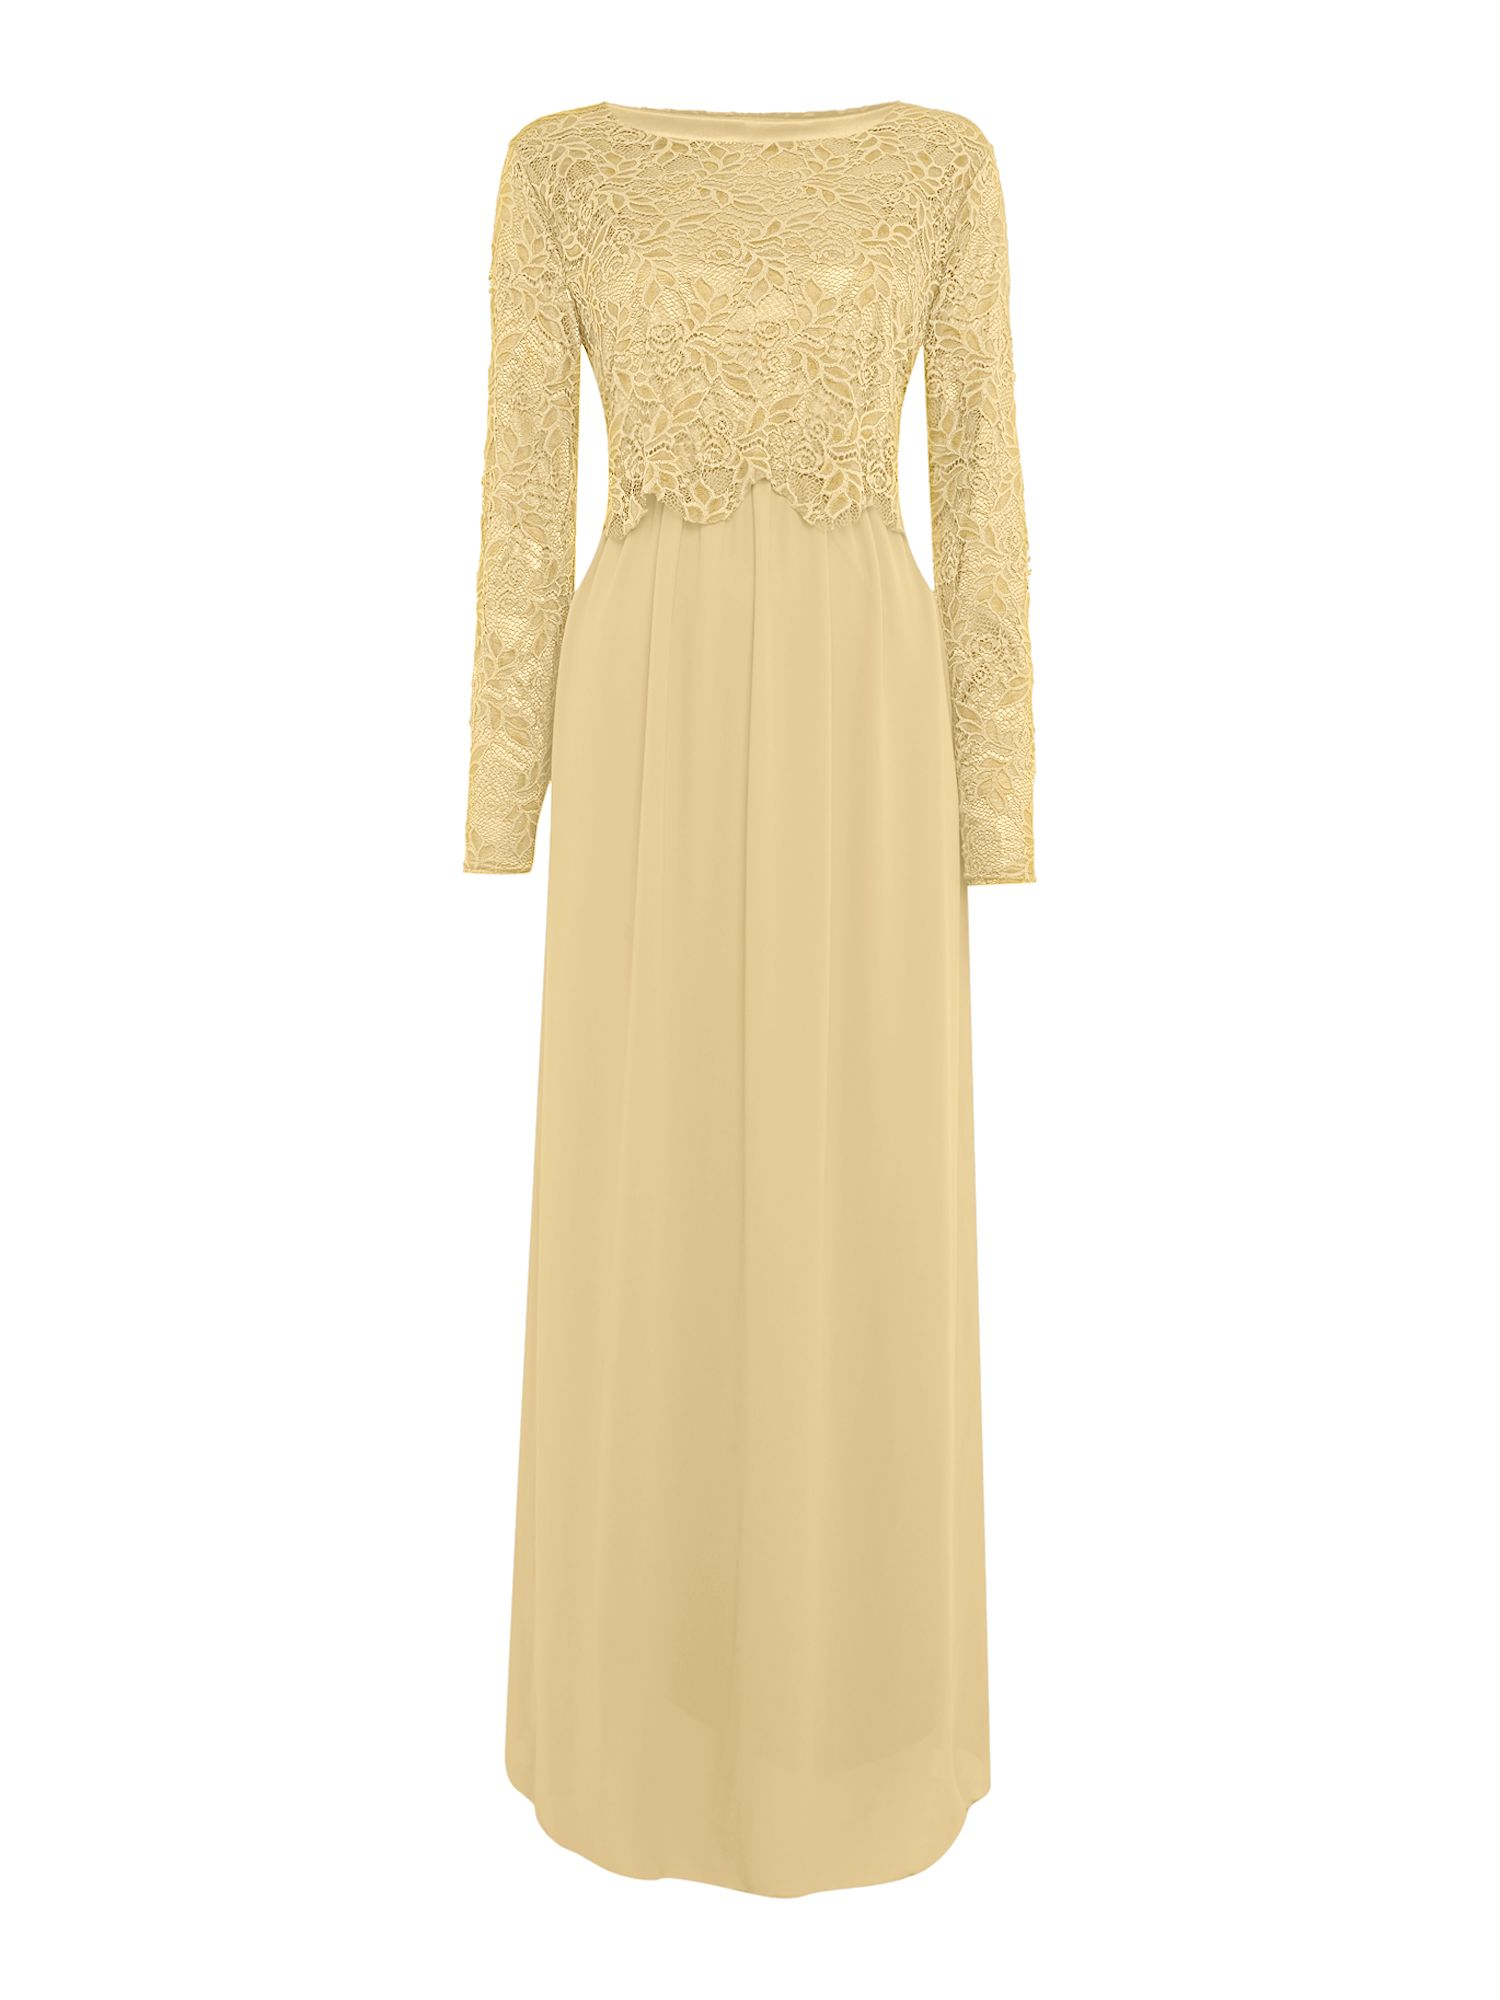 Shorso Lace maxi dress, Cream